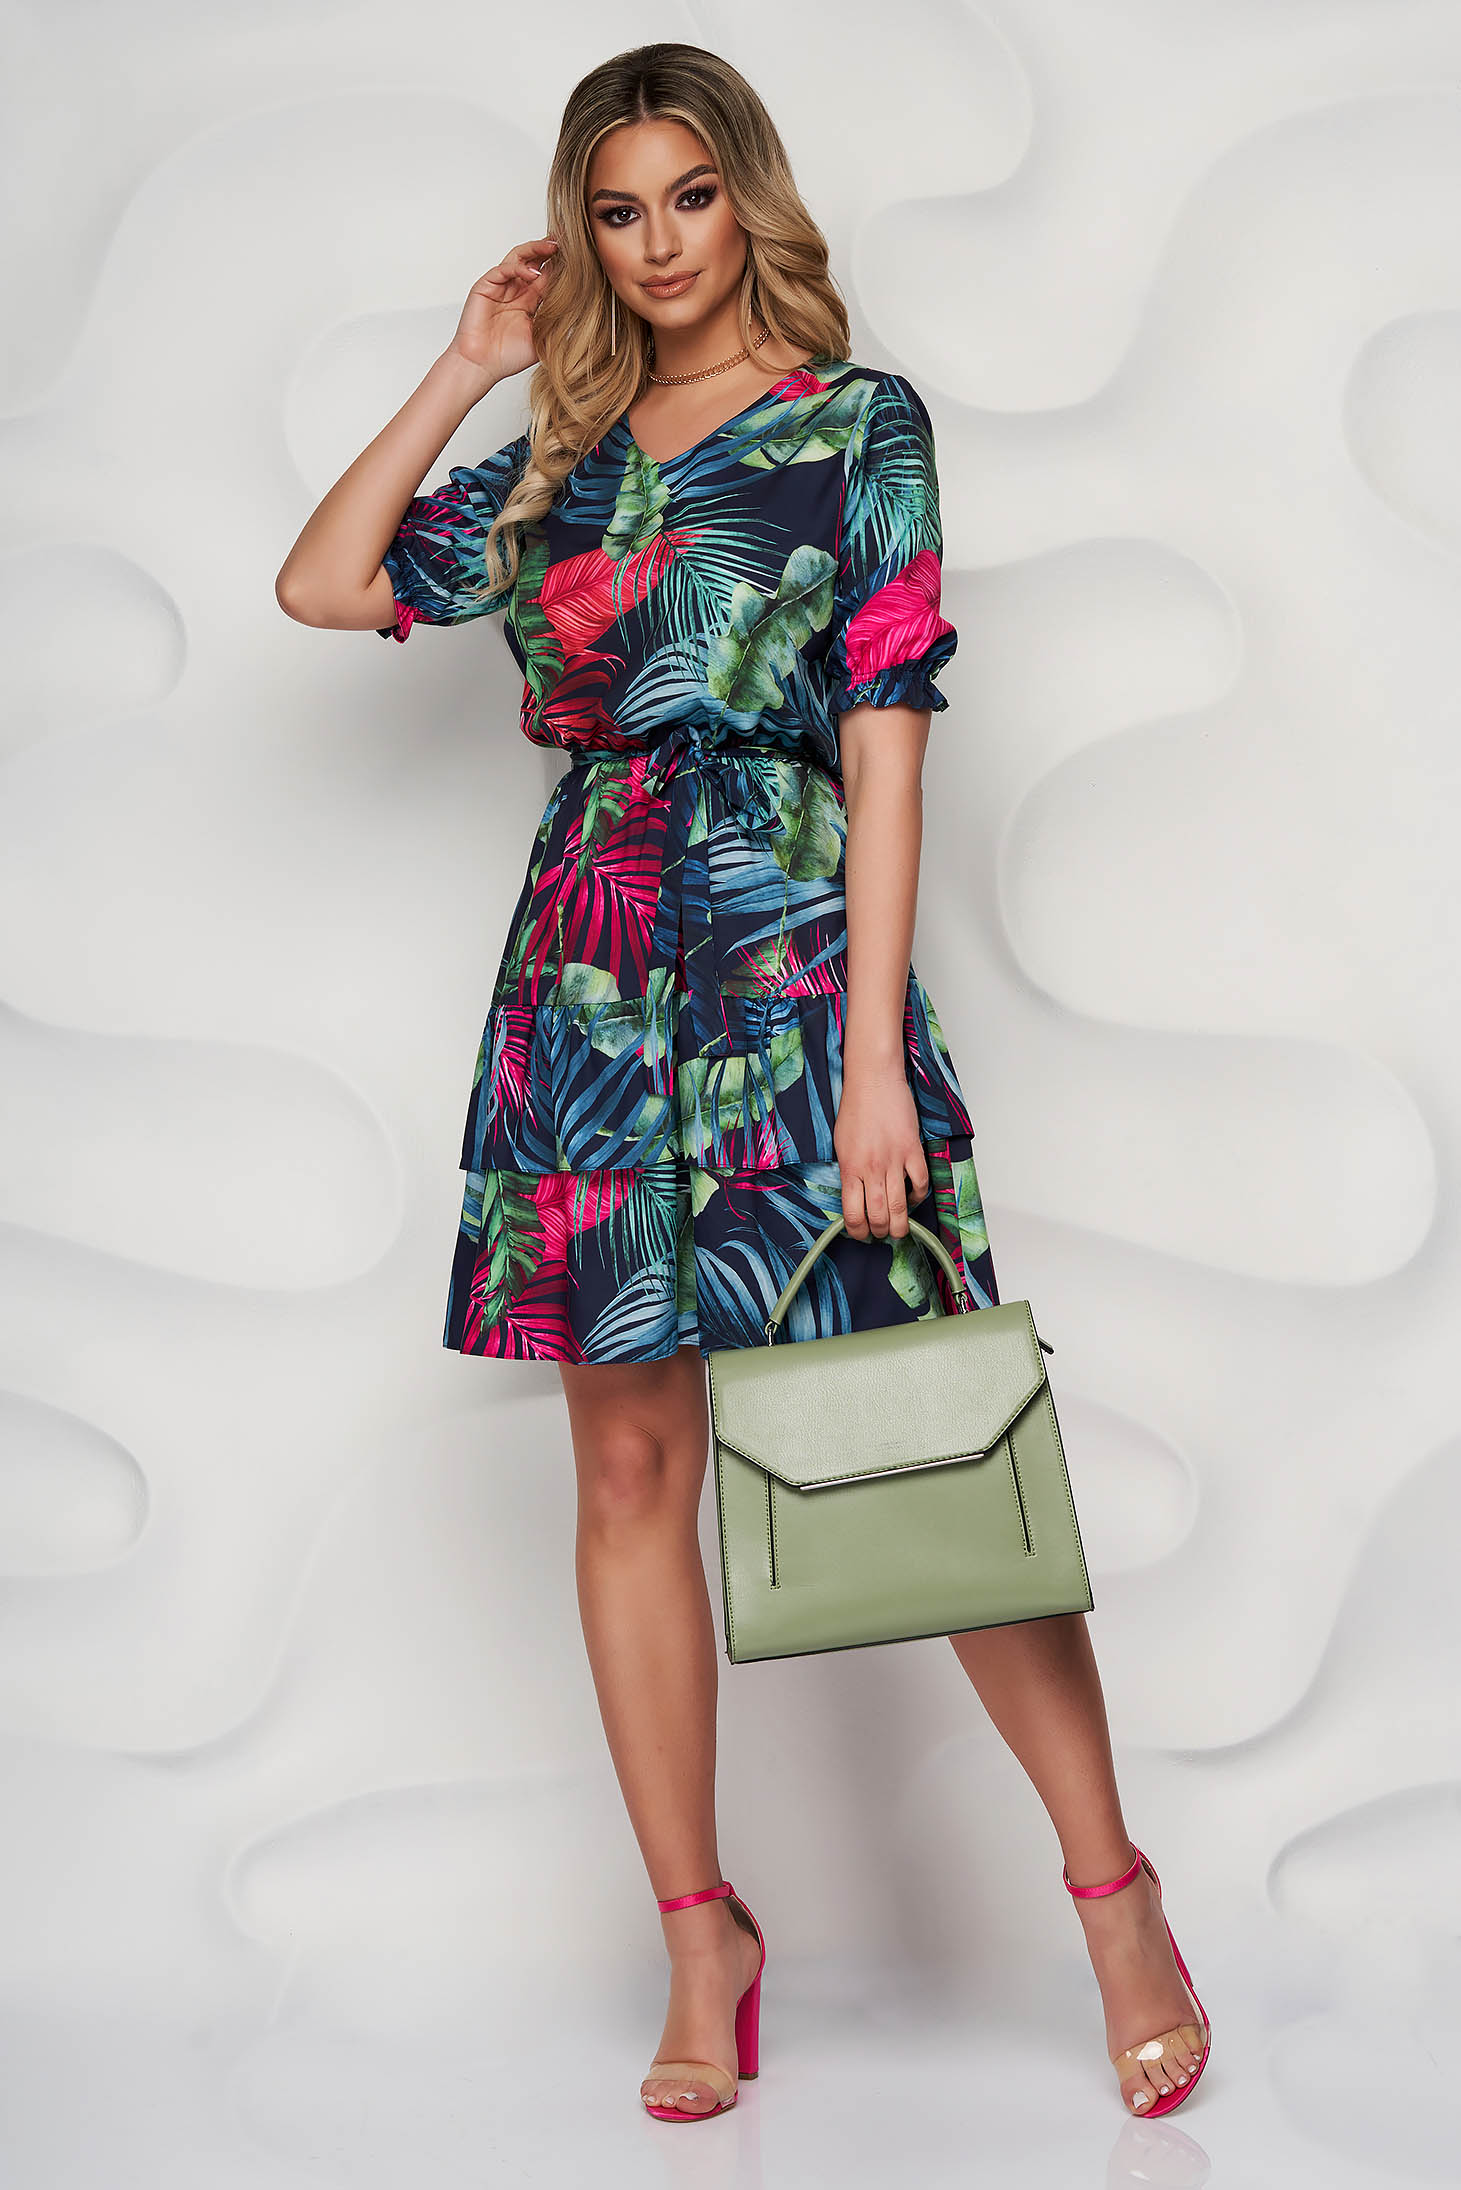 StarShinerS darkblue dress short cut daily with ruffles at the buttom of the dress with floral prints